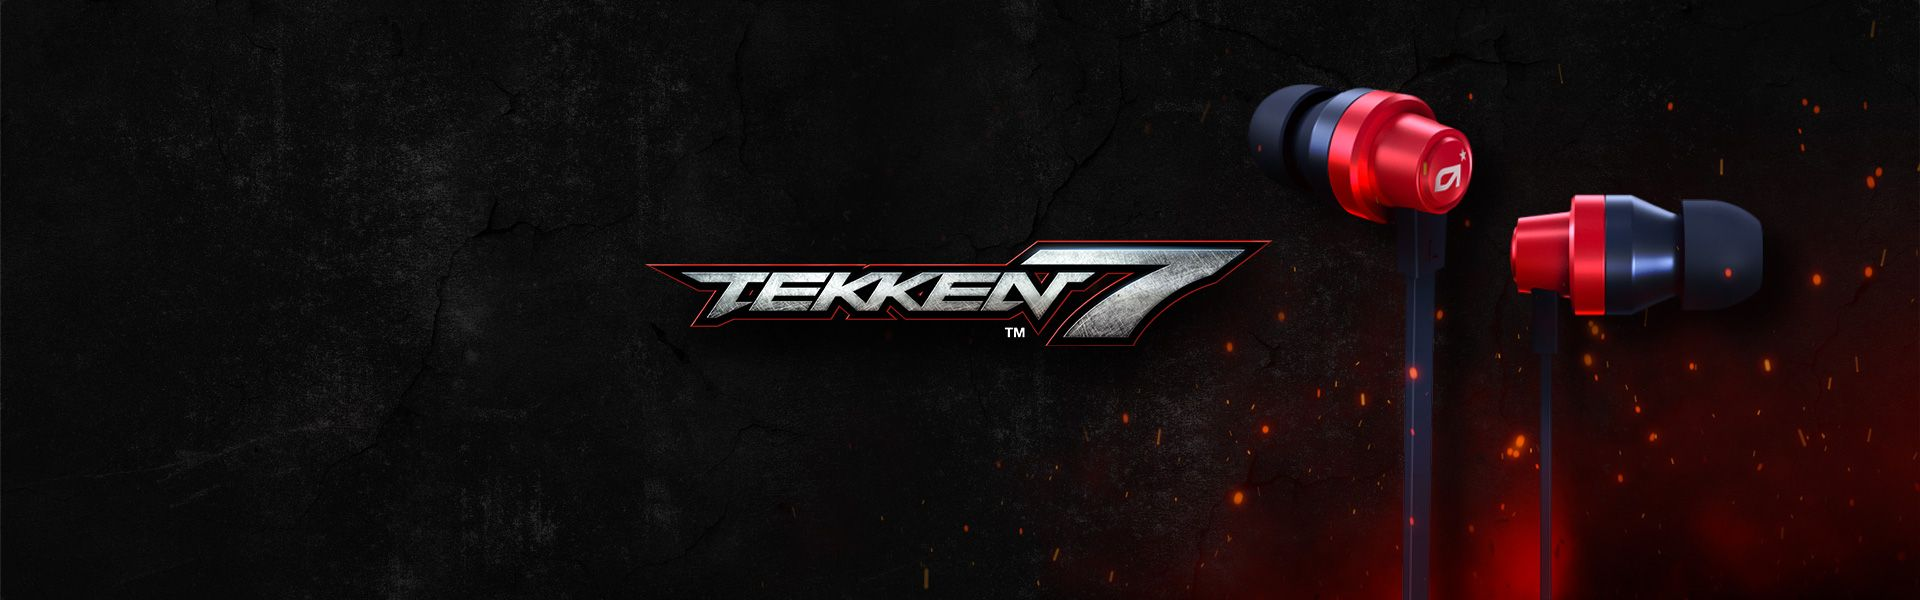 Join the Tekken Giveaway with Astrogaming!